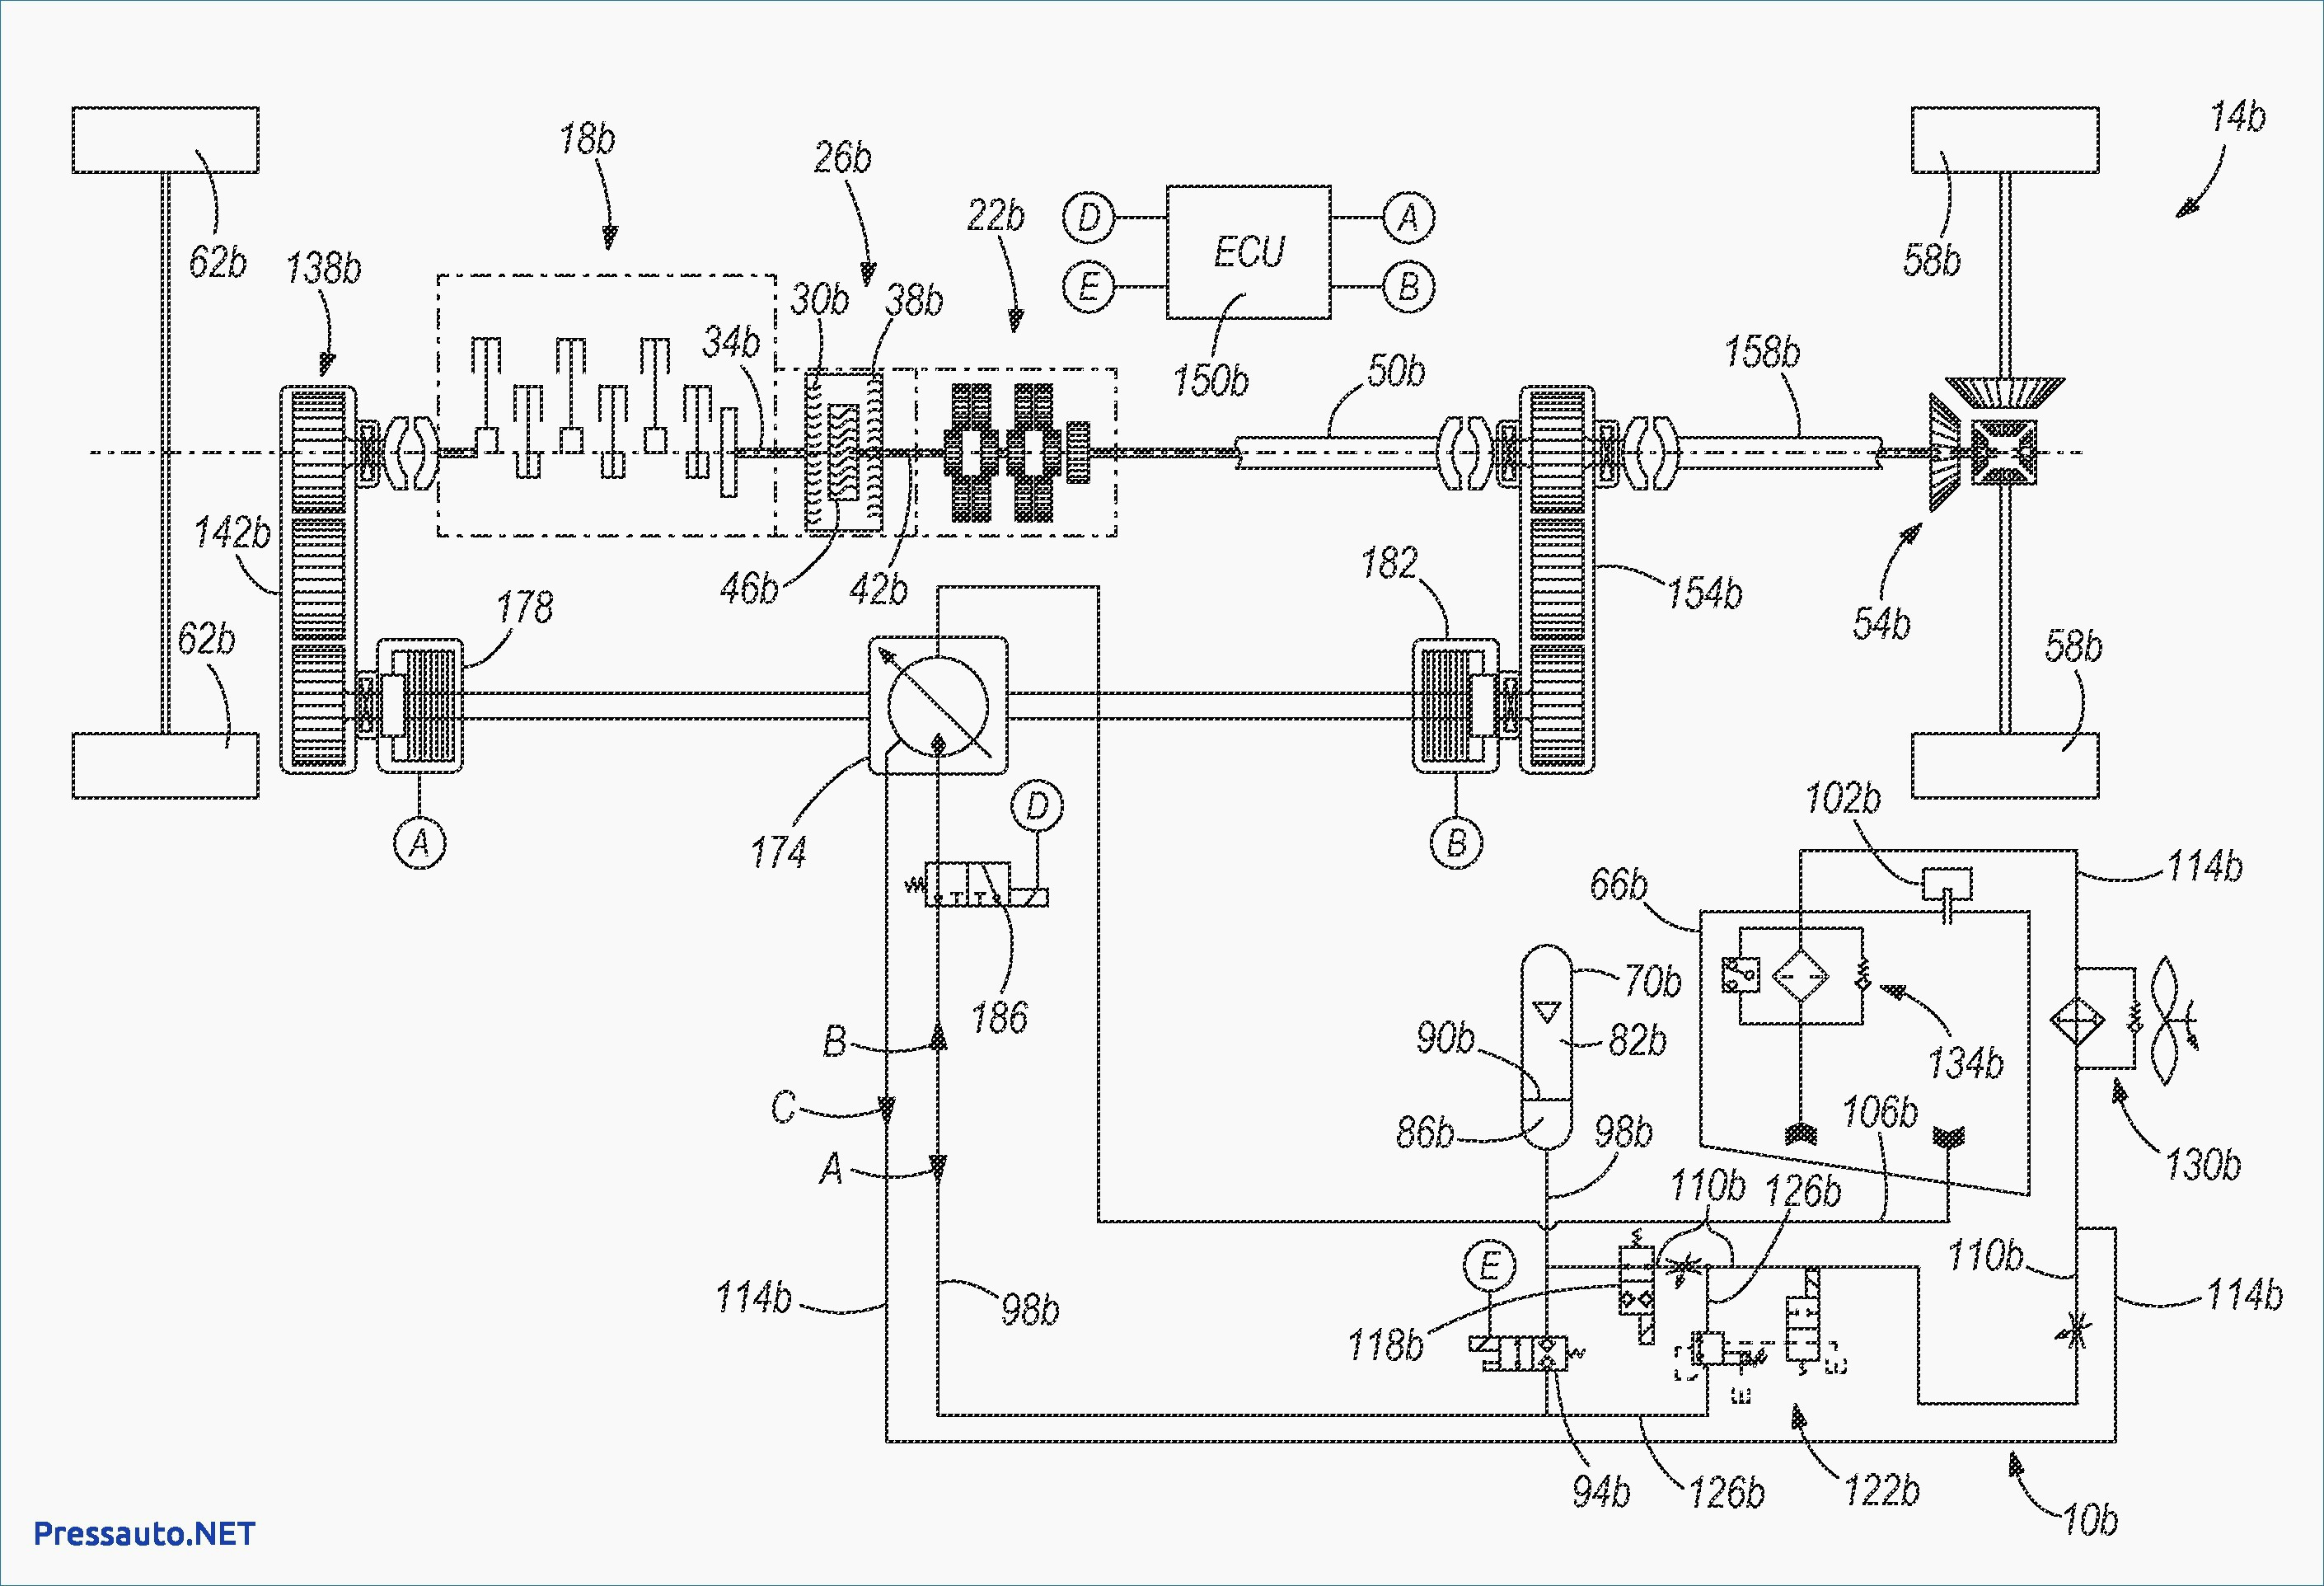 ih 3288 wiring diagram online circuit wiring diagram u2022 rh electrobuddha co uk